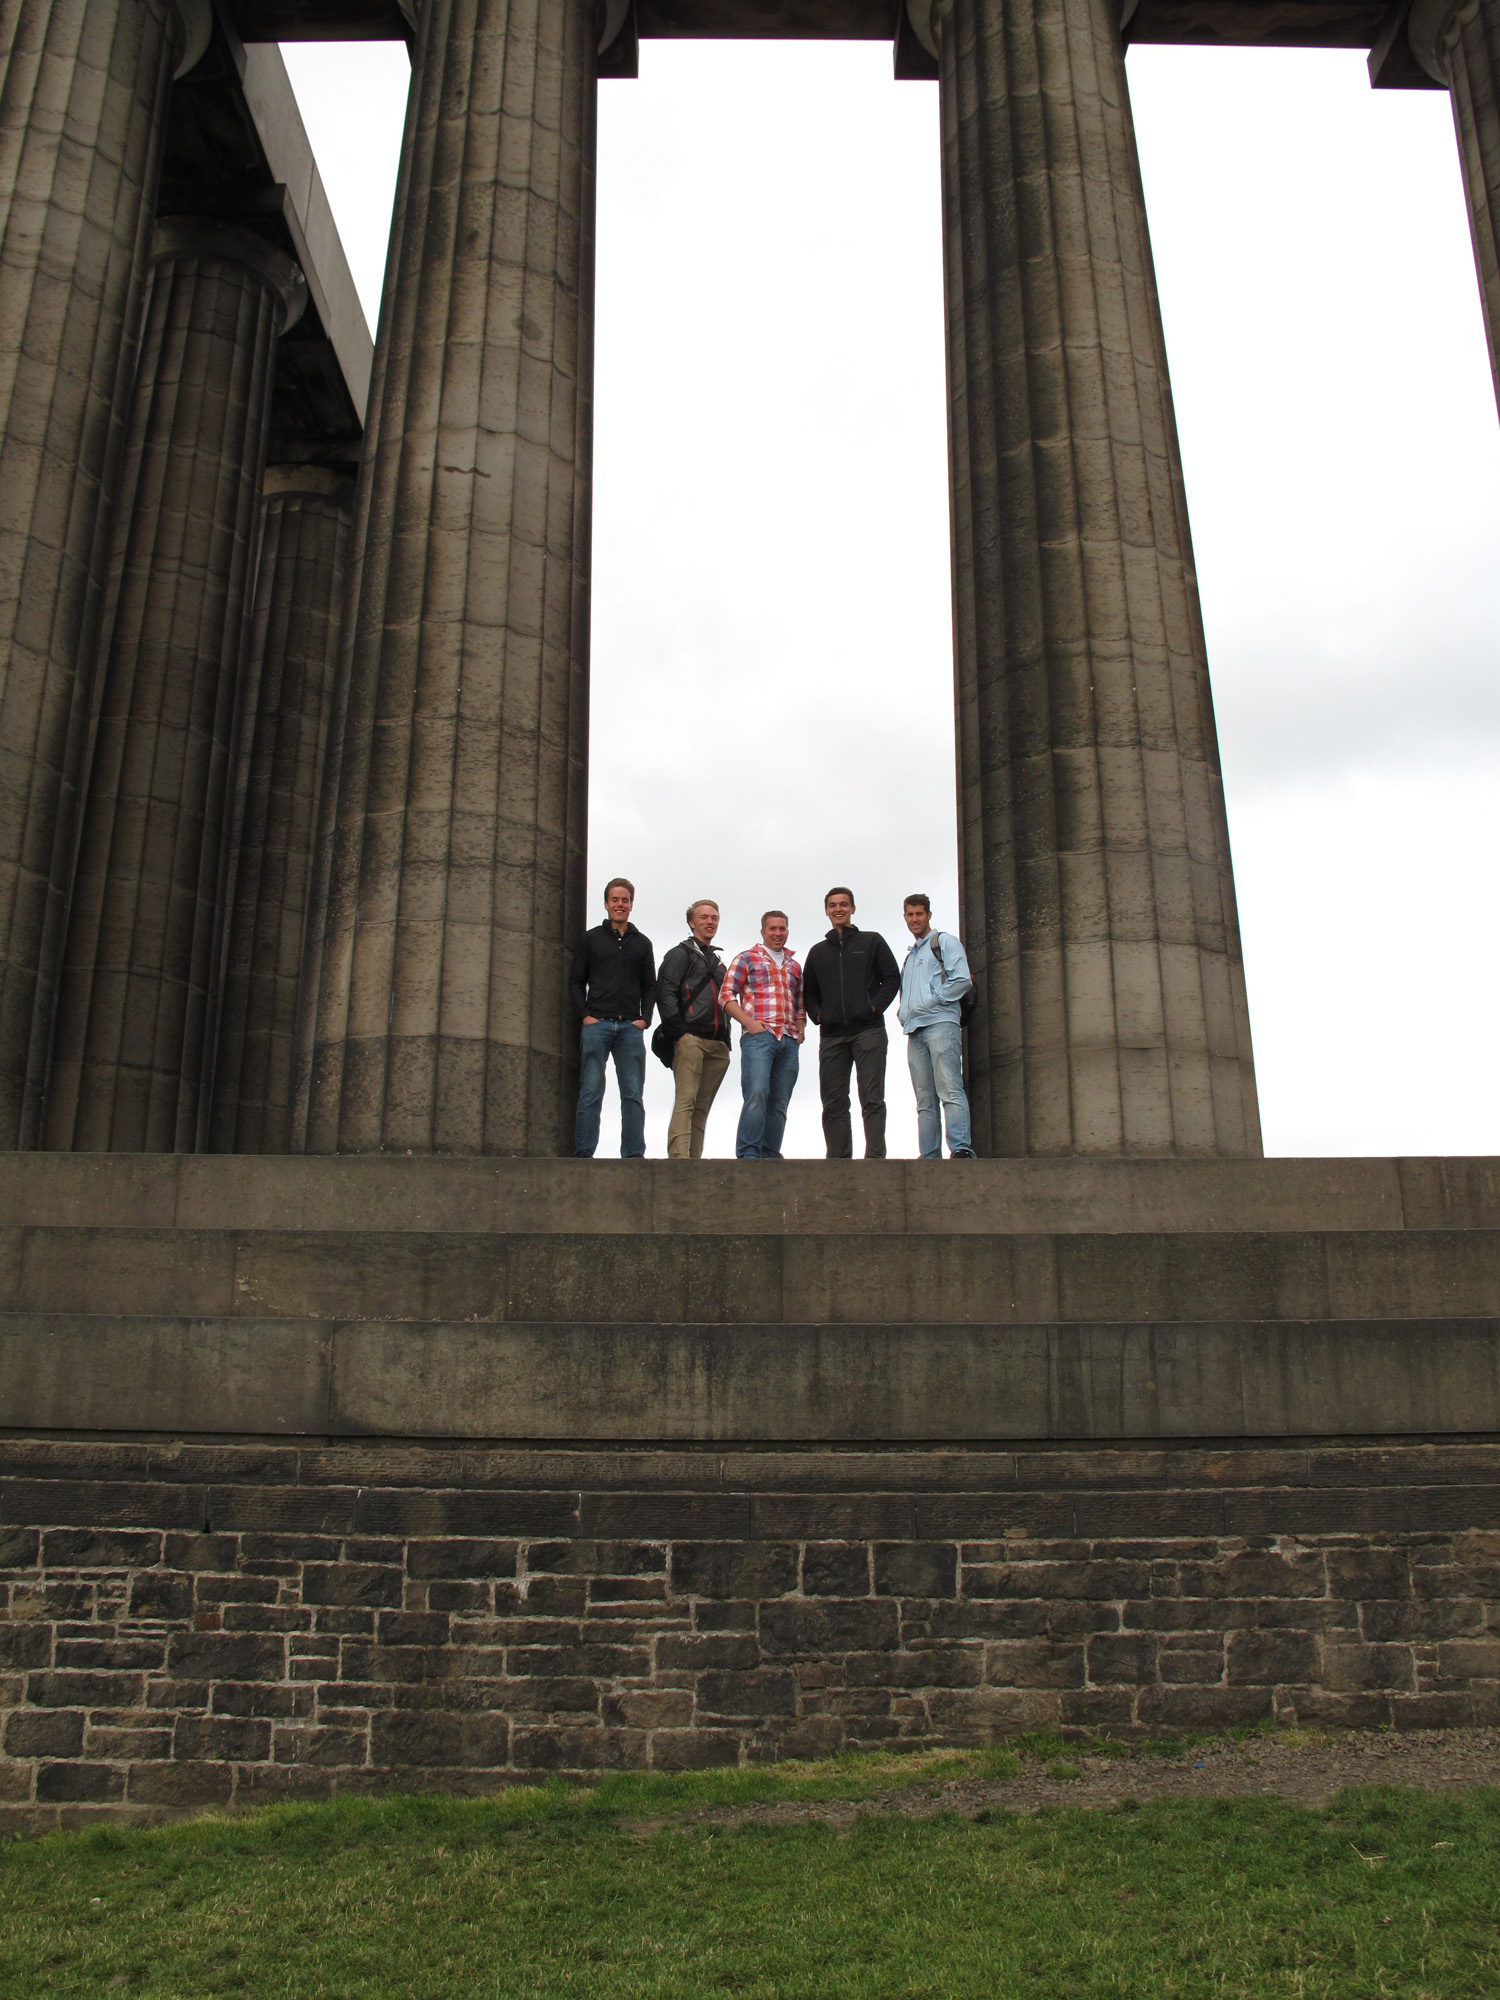 On Calton Hill